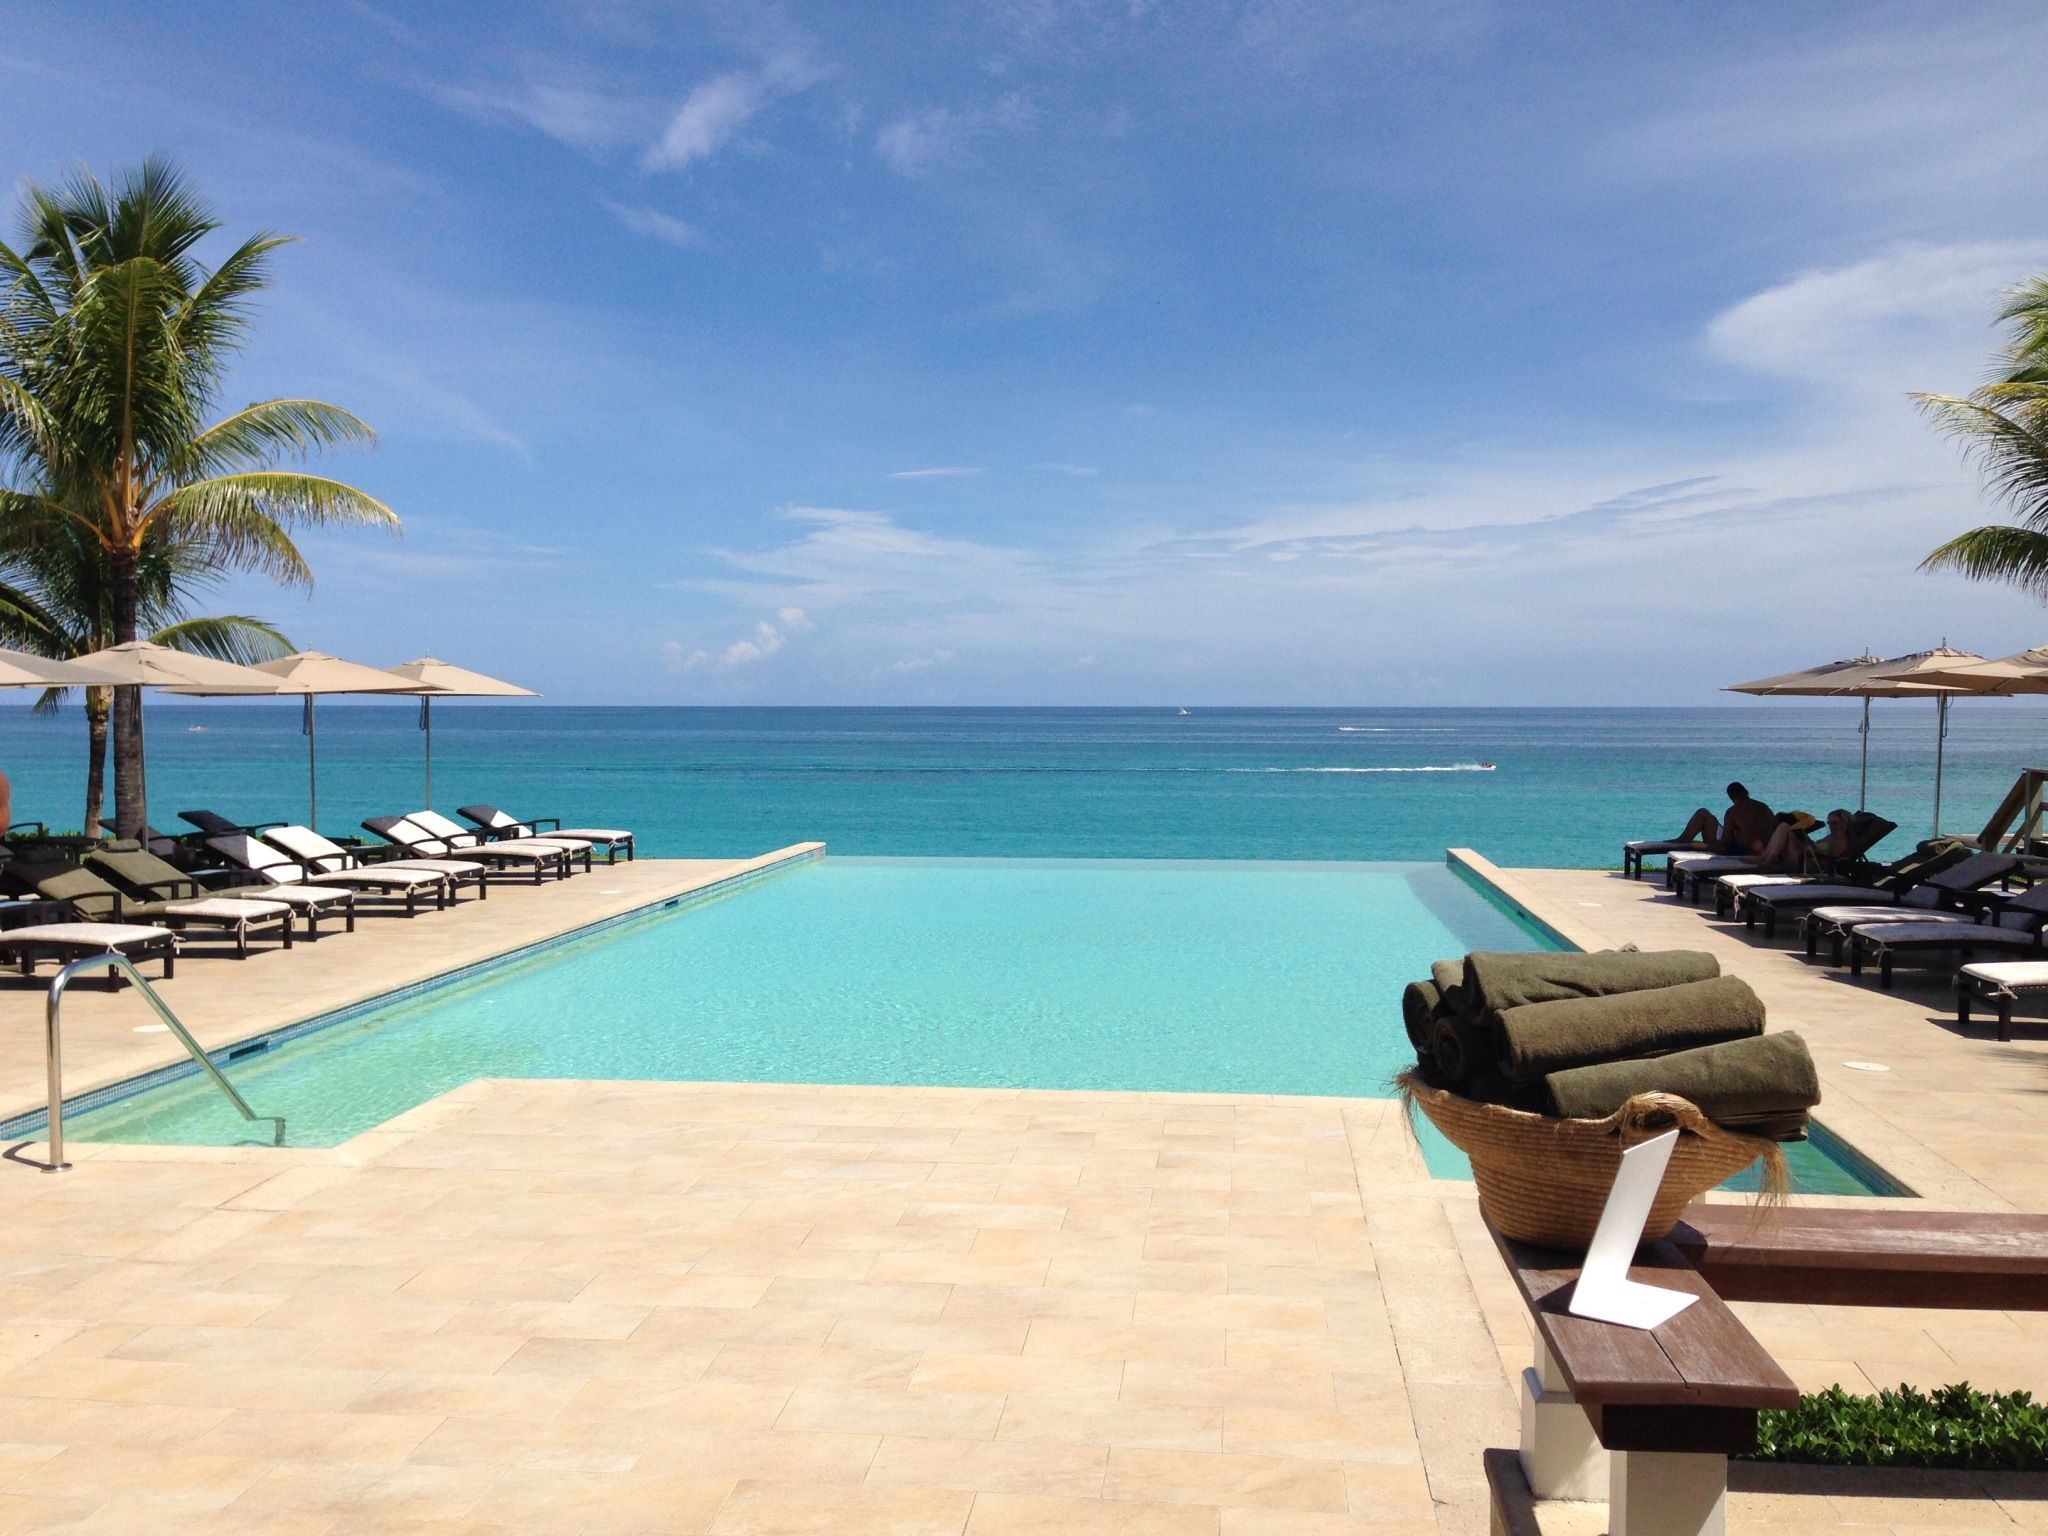 infinity pool at the one u0026only ocean club in nassau paradise island